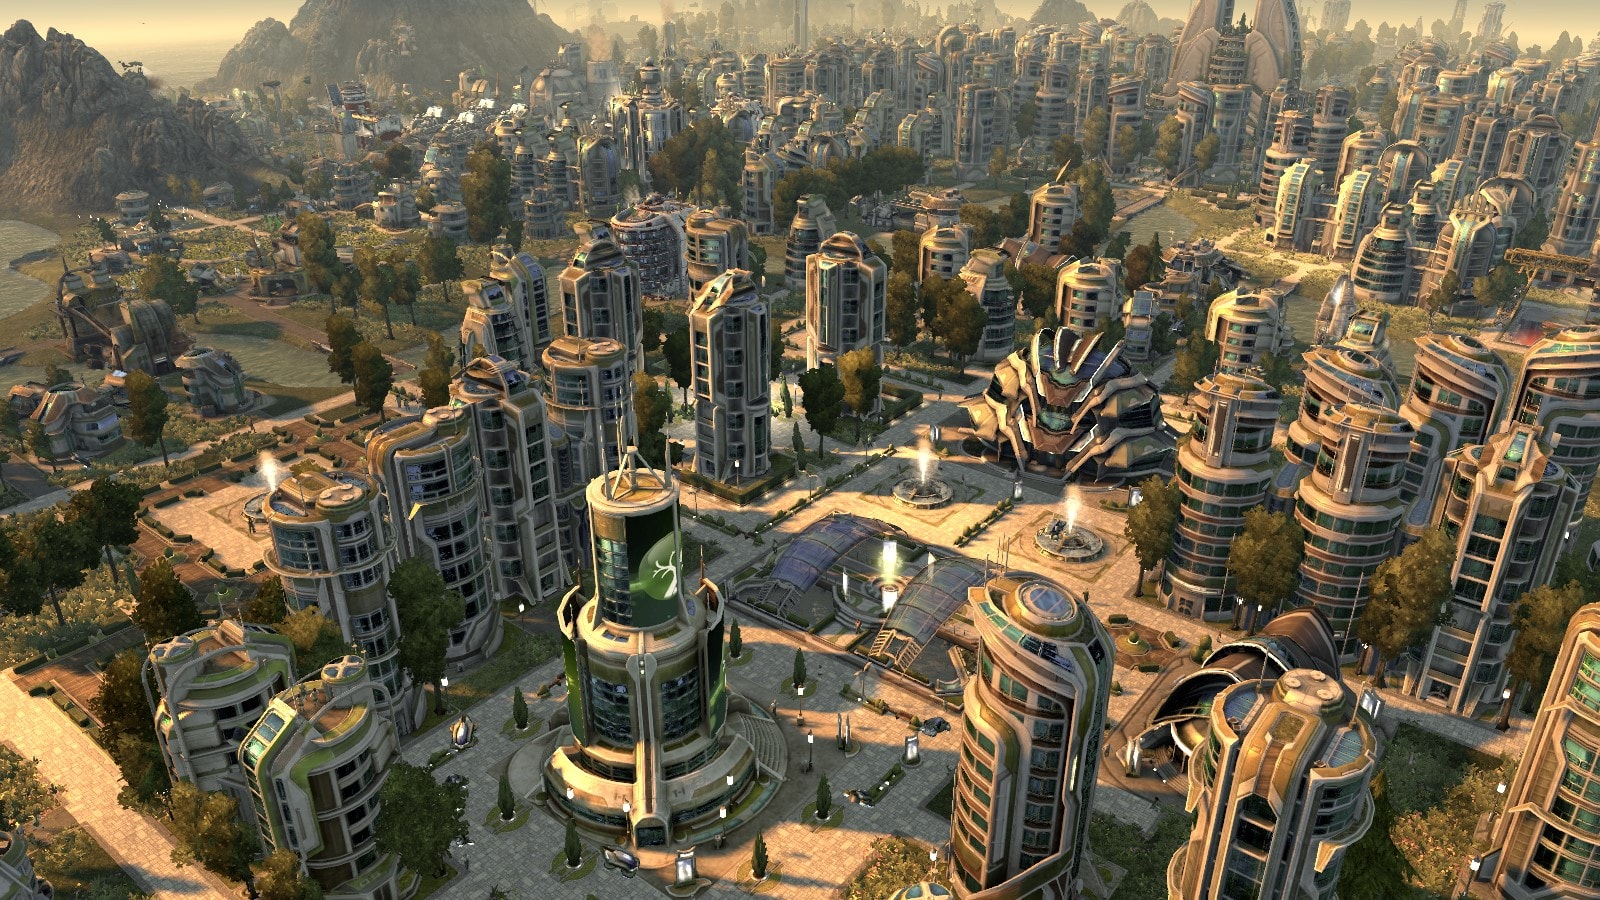 In Anno 2070, you are tasked with reshaping the city after a massive disaster has hit it.